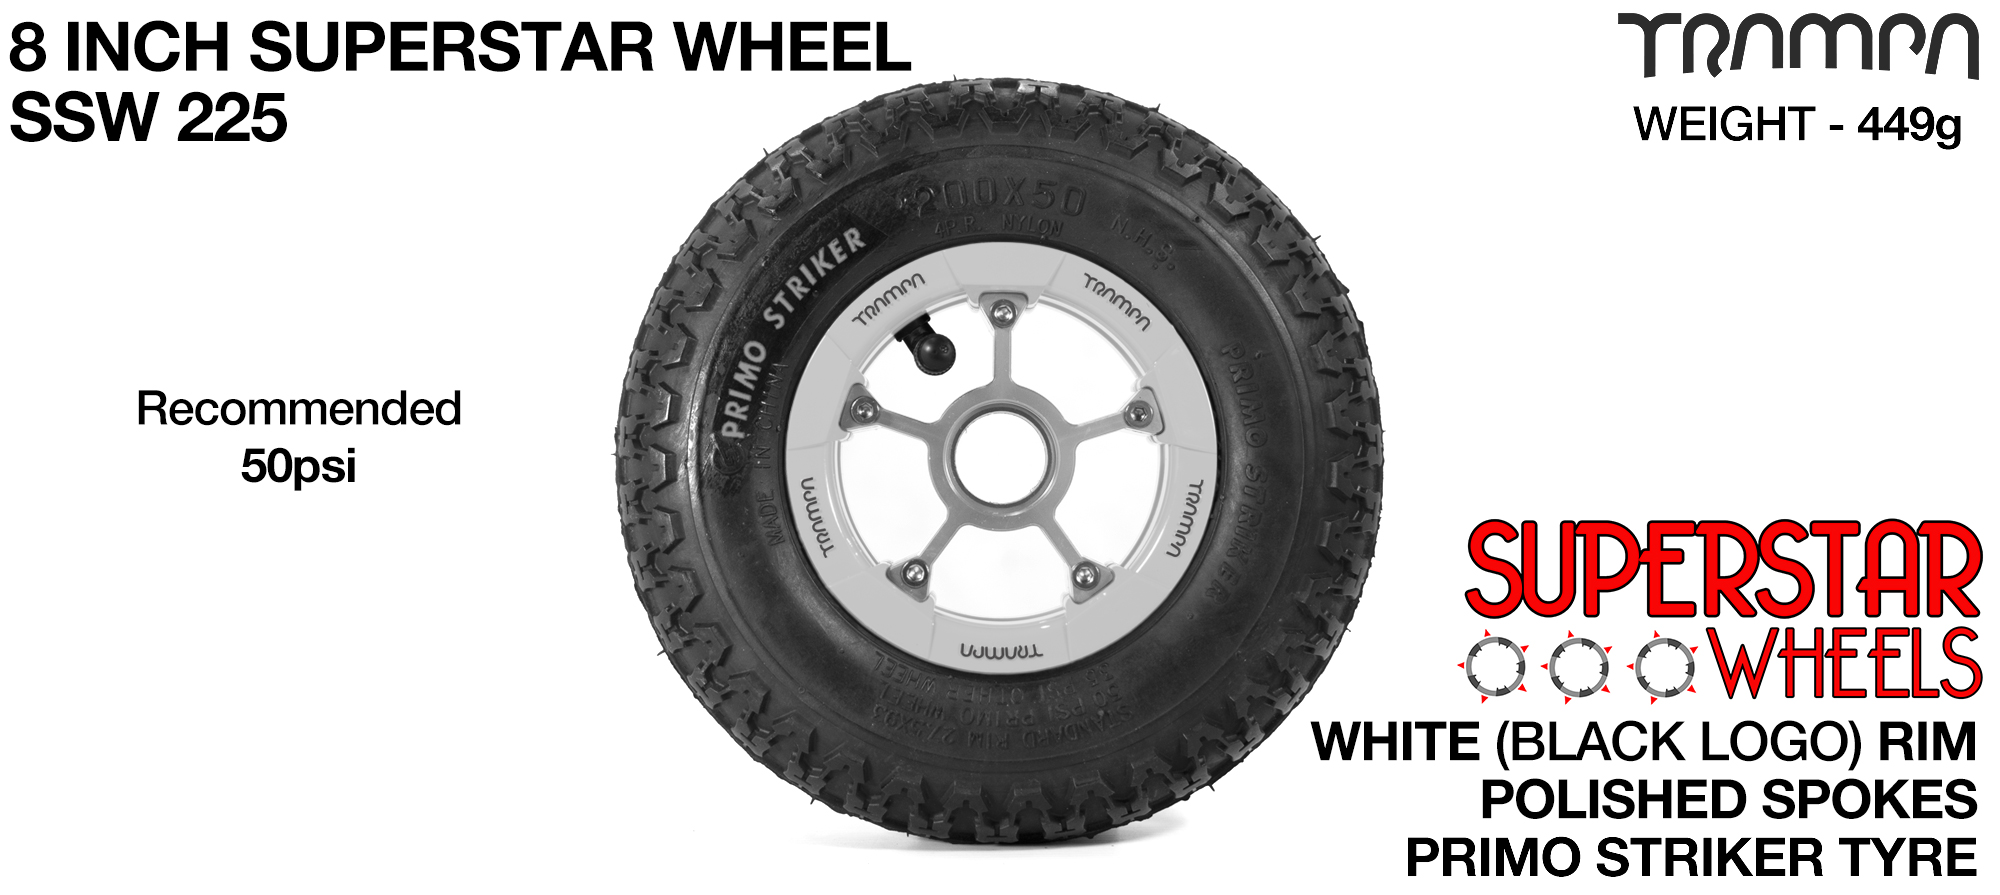 8 Inch Wheel - White Superstar Rim Polished Anodised Spokes & Primo Striker 8 Inch Tyre